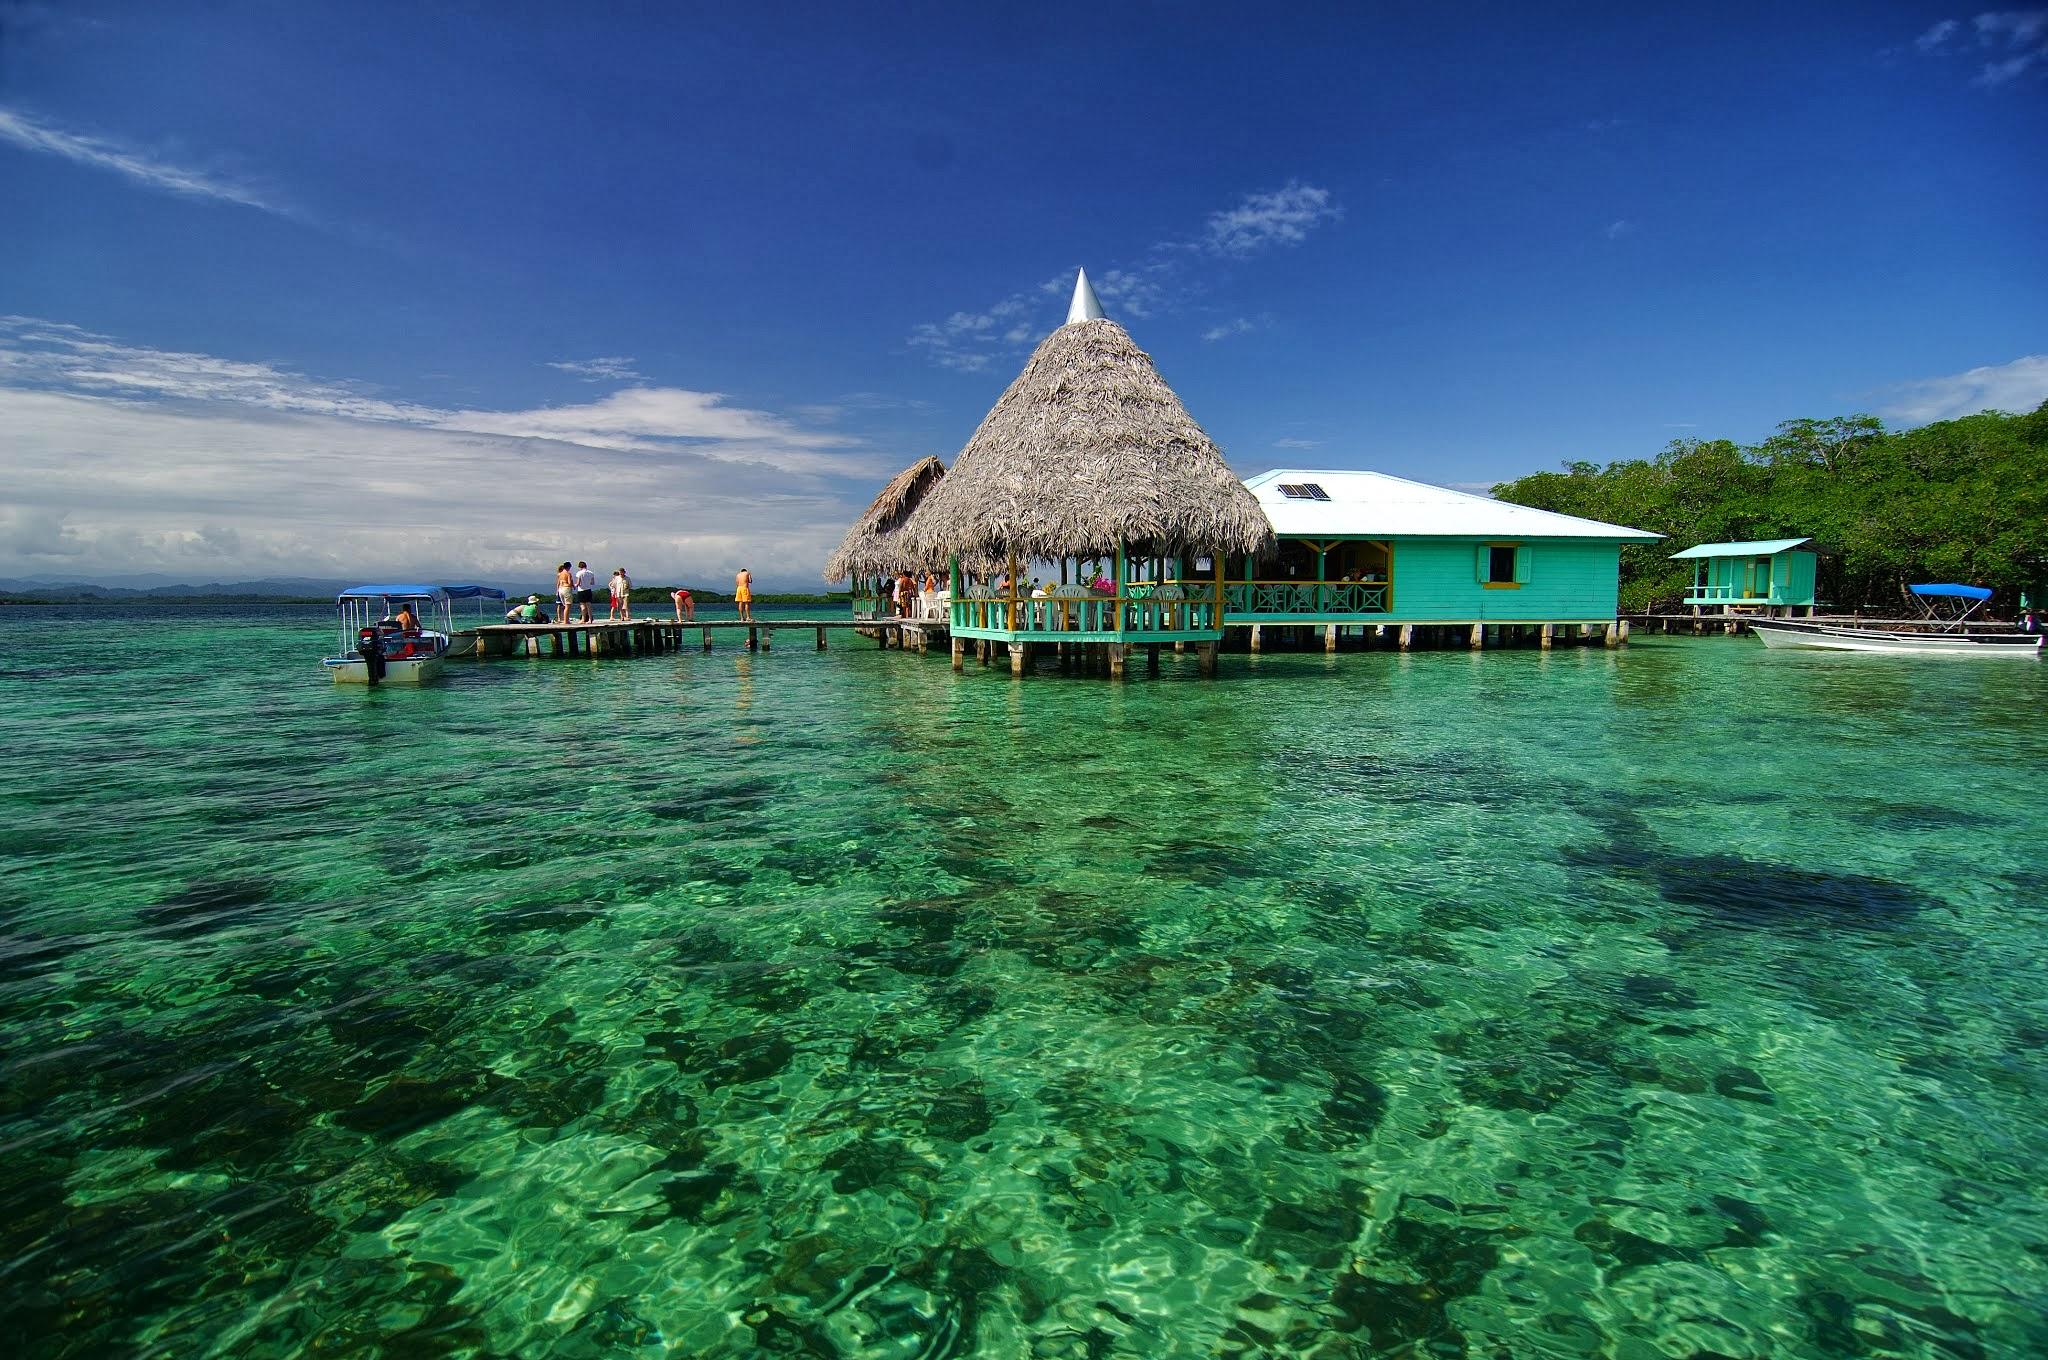 bocas del toro muslim Bocas del toro also known colloquially as bocas town, is the capital of the  panamanian province of bocas del toro and the district of bocas del toro.